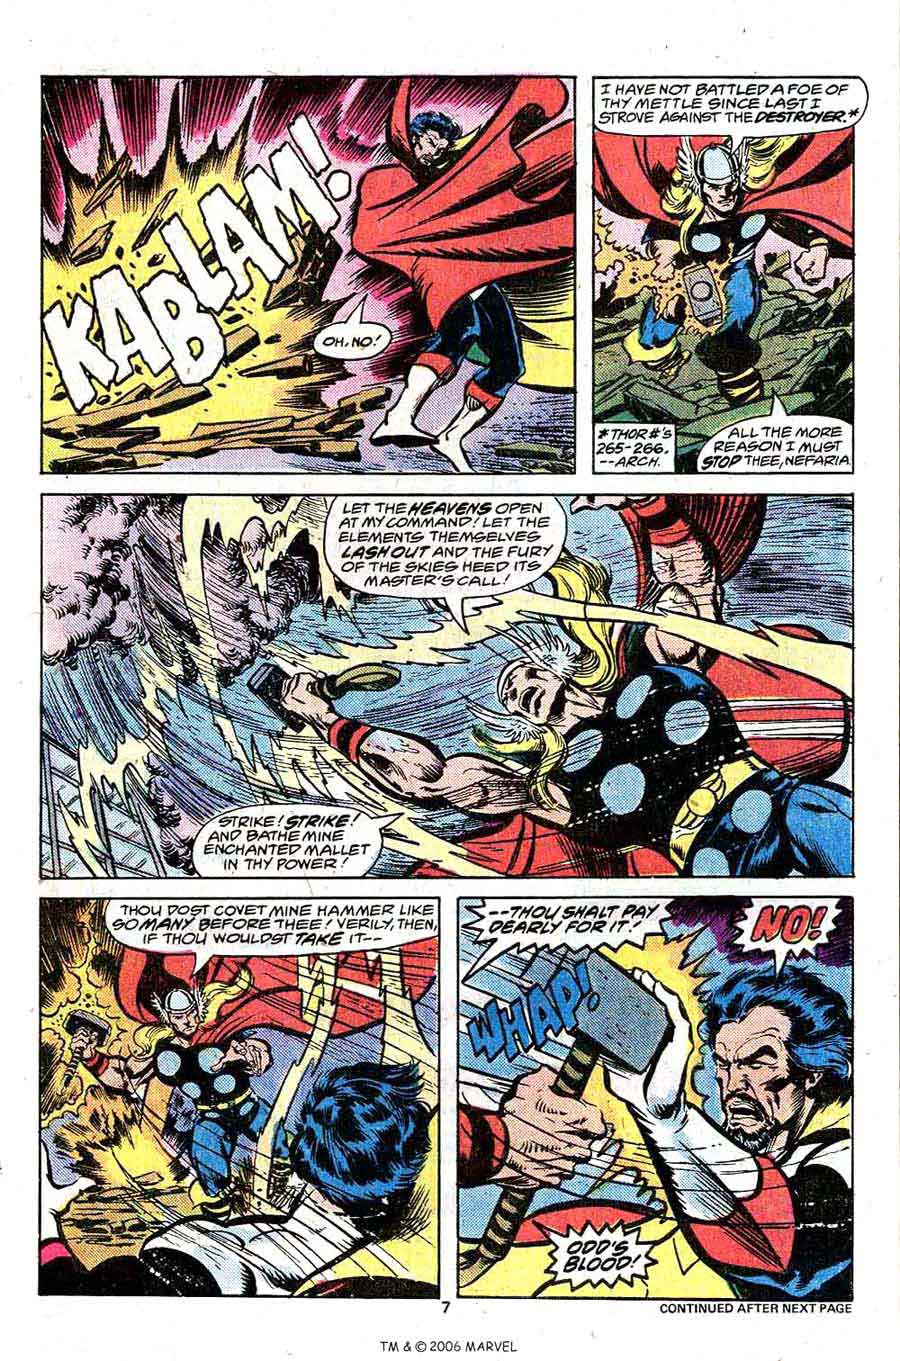 Avengers #166 marvel 1970s bronze age comic book page art by John Byrne